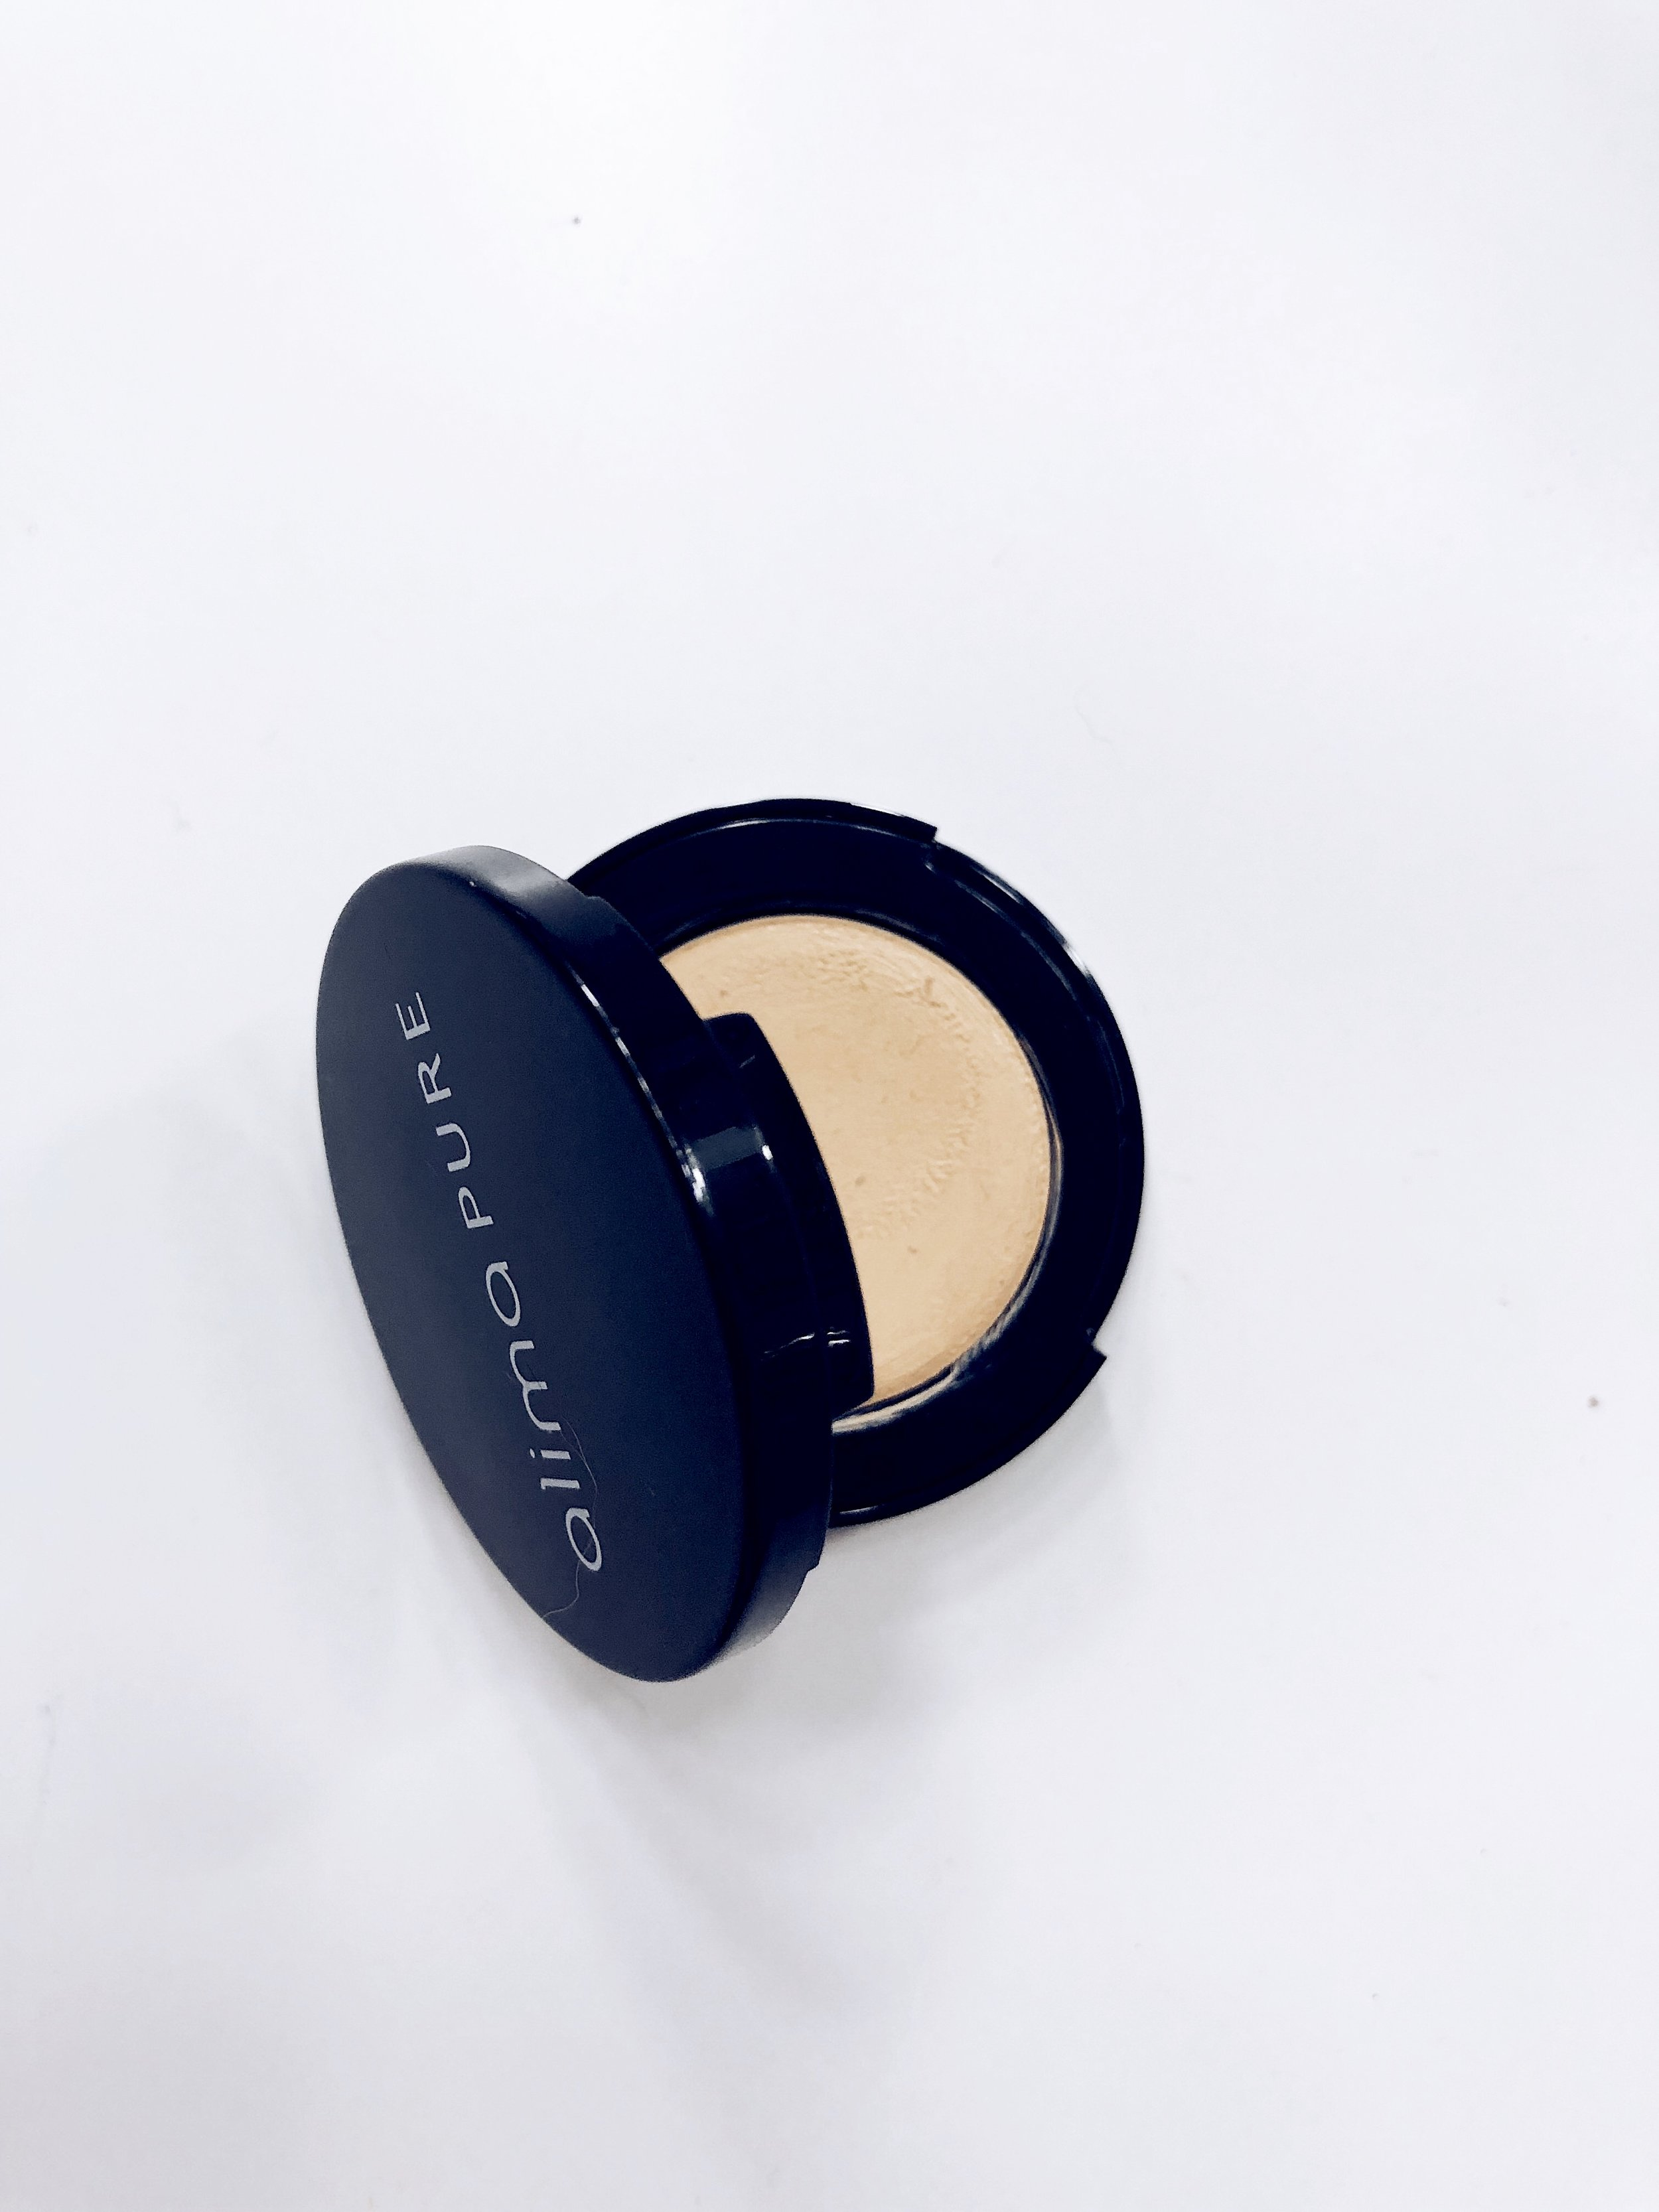 Alima Pure Cream Concealer - $28 - Here's the quick SCORECARD breakdown. Each question is rated on a scale of 1 to 5, 5 being the best:1. How do the ingredients look (EWG.org ratings)?- 4: Looks good except for the possibly inclusion of Ultramarines- see below. *Gluten-free2. How effective is the coverage?- 4: As solid medium coverage that starts buttery in the pan and offers a velvety finish on the skin. 10 shades available.3. Does it look natural?- 4: It does sit a bit on top of the skin. The velvety finish feels like it sets itself.4. Does it play well with other products?- 3: This can be trickier for dry skin types. You may want to use a bit of moisturizer.5. Does it last all day?- 4: I don't find I have to reapply in the middle of the day. Not much setting involved either, per above.6. Is it non-irritating?- 5: No problems here!7. How conscious is the brand? Cruelty free, sustainable, etc.- 4FINAL SCORE:28/35